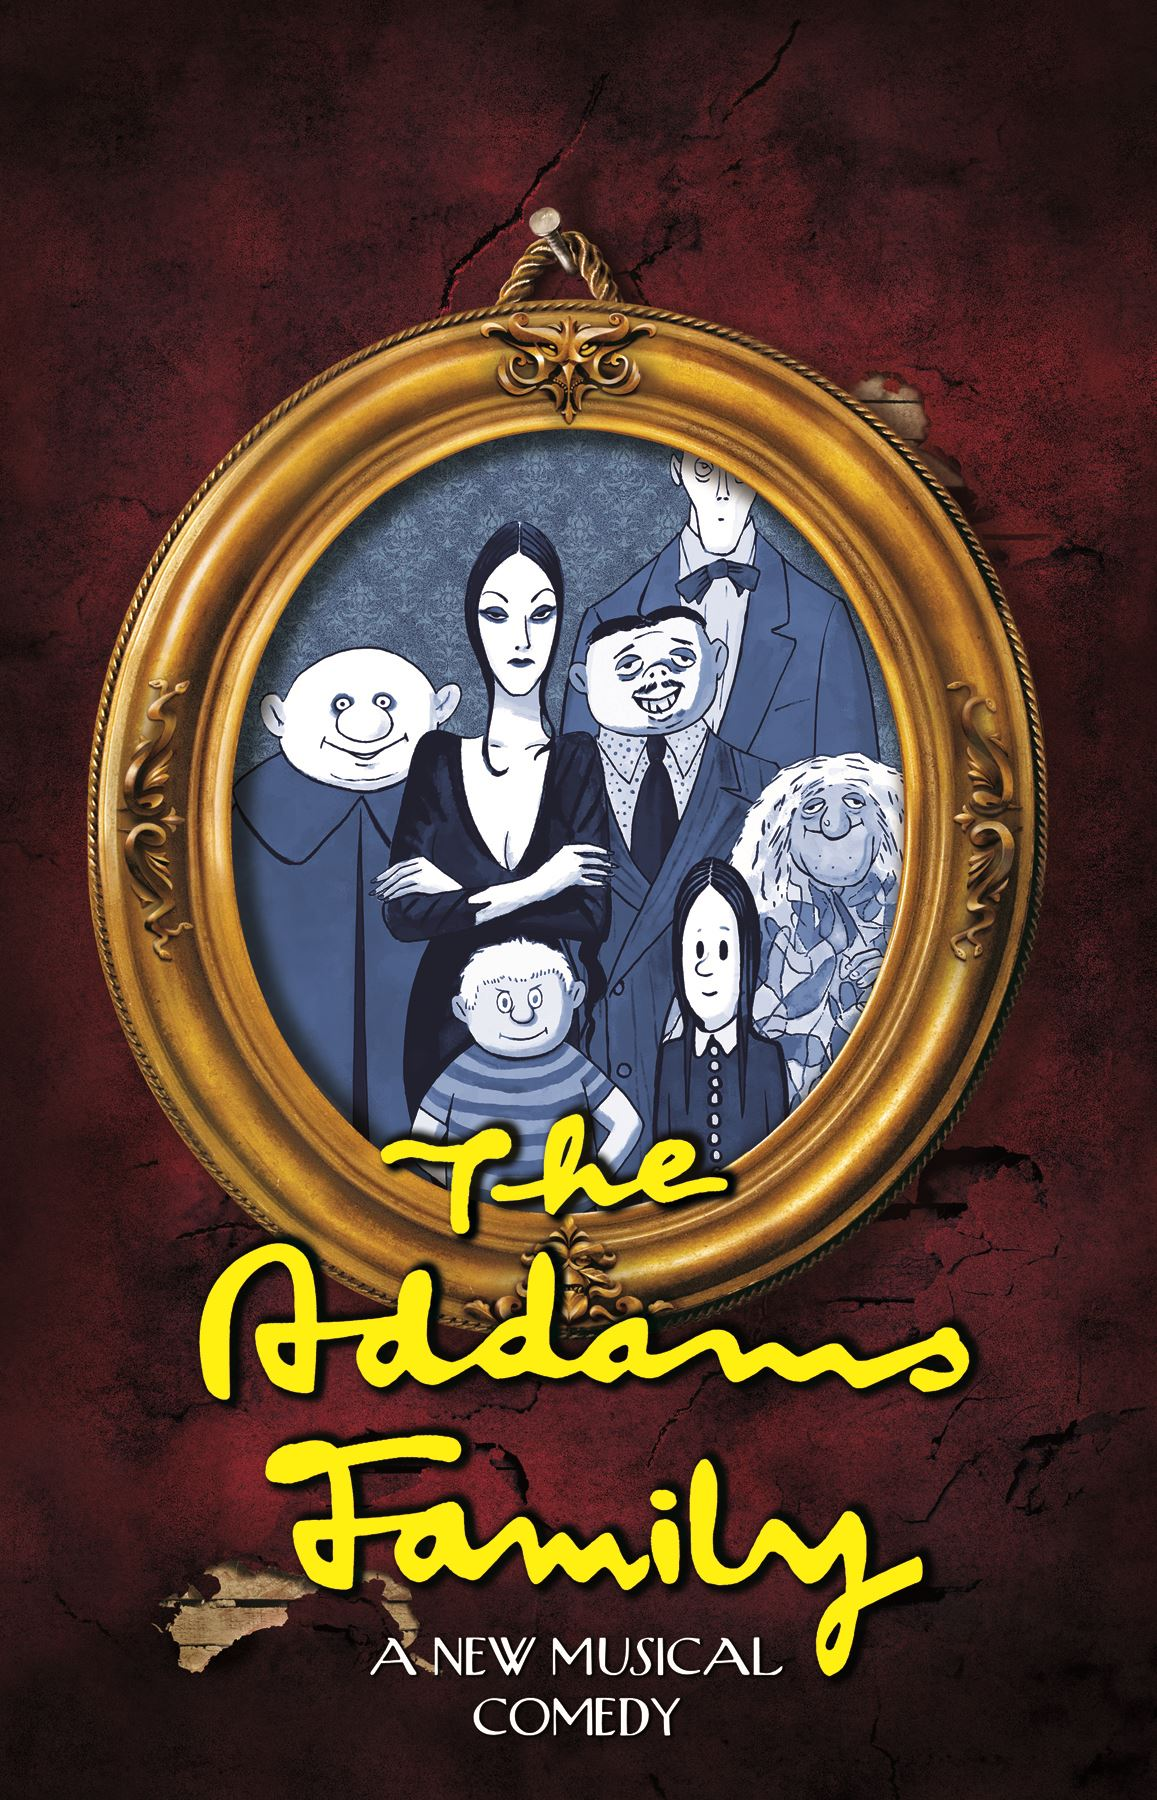 Drawn portrait of The Addams Family